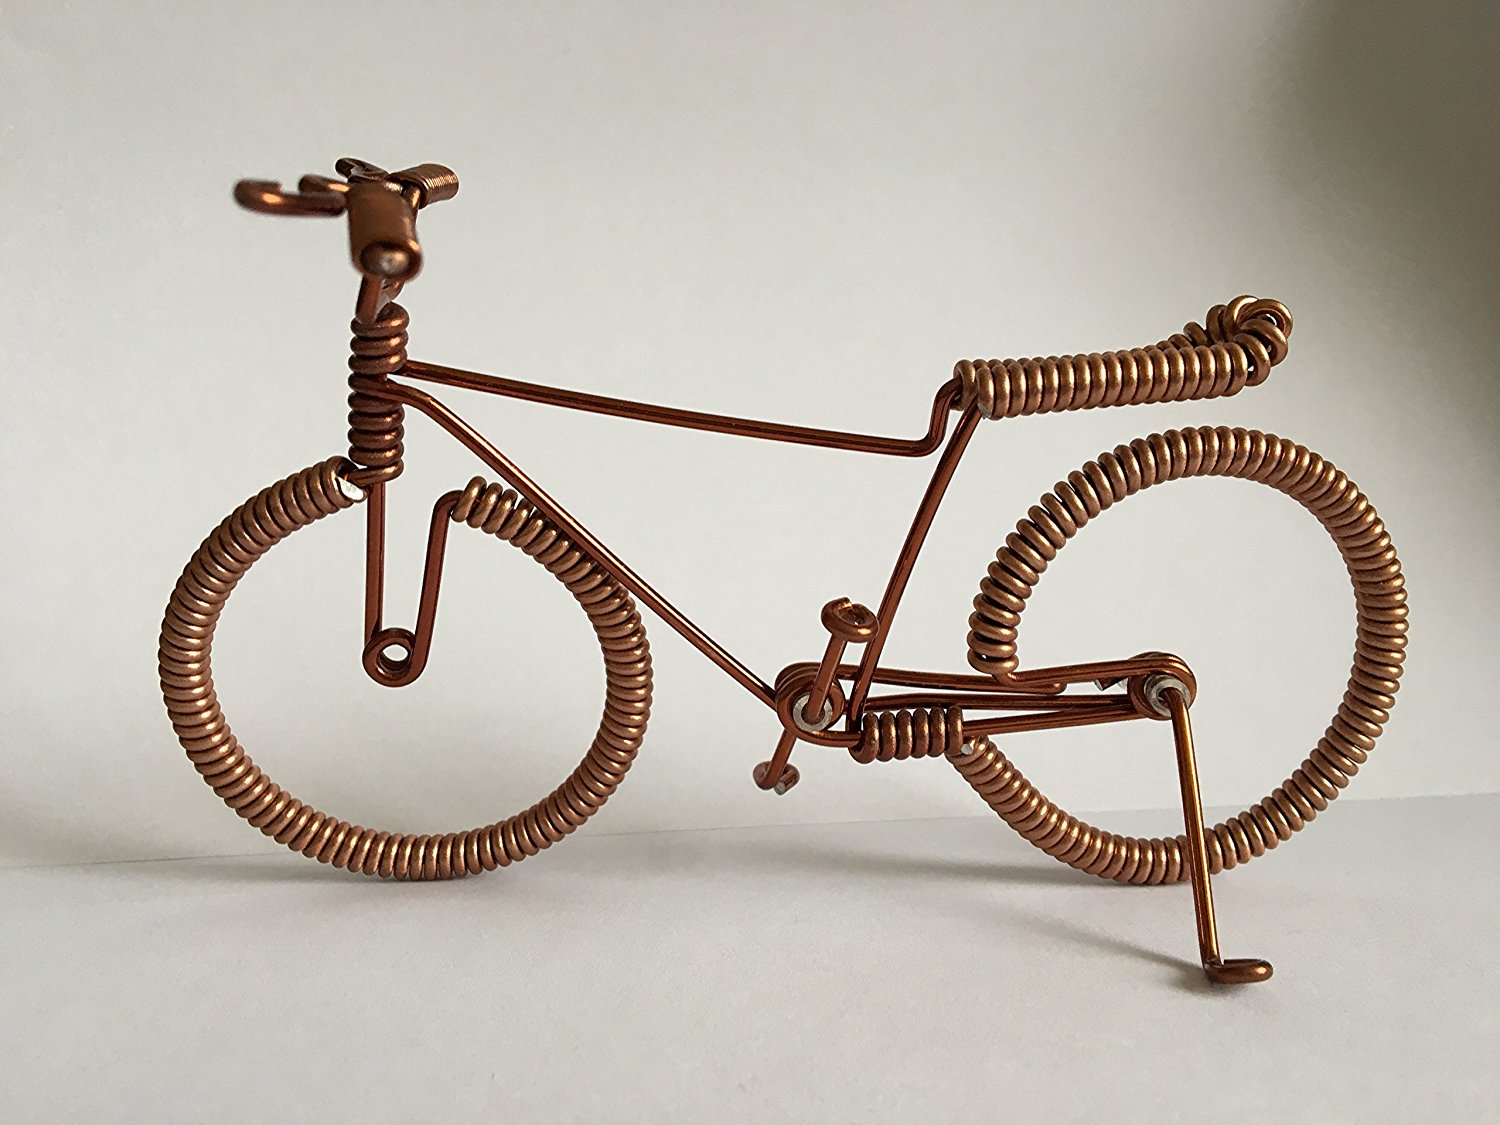 Buy Handcrafted Model Bike With Unique Biking Birthday Gifts For